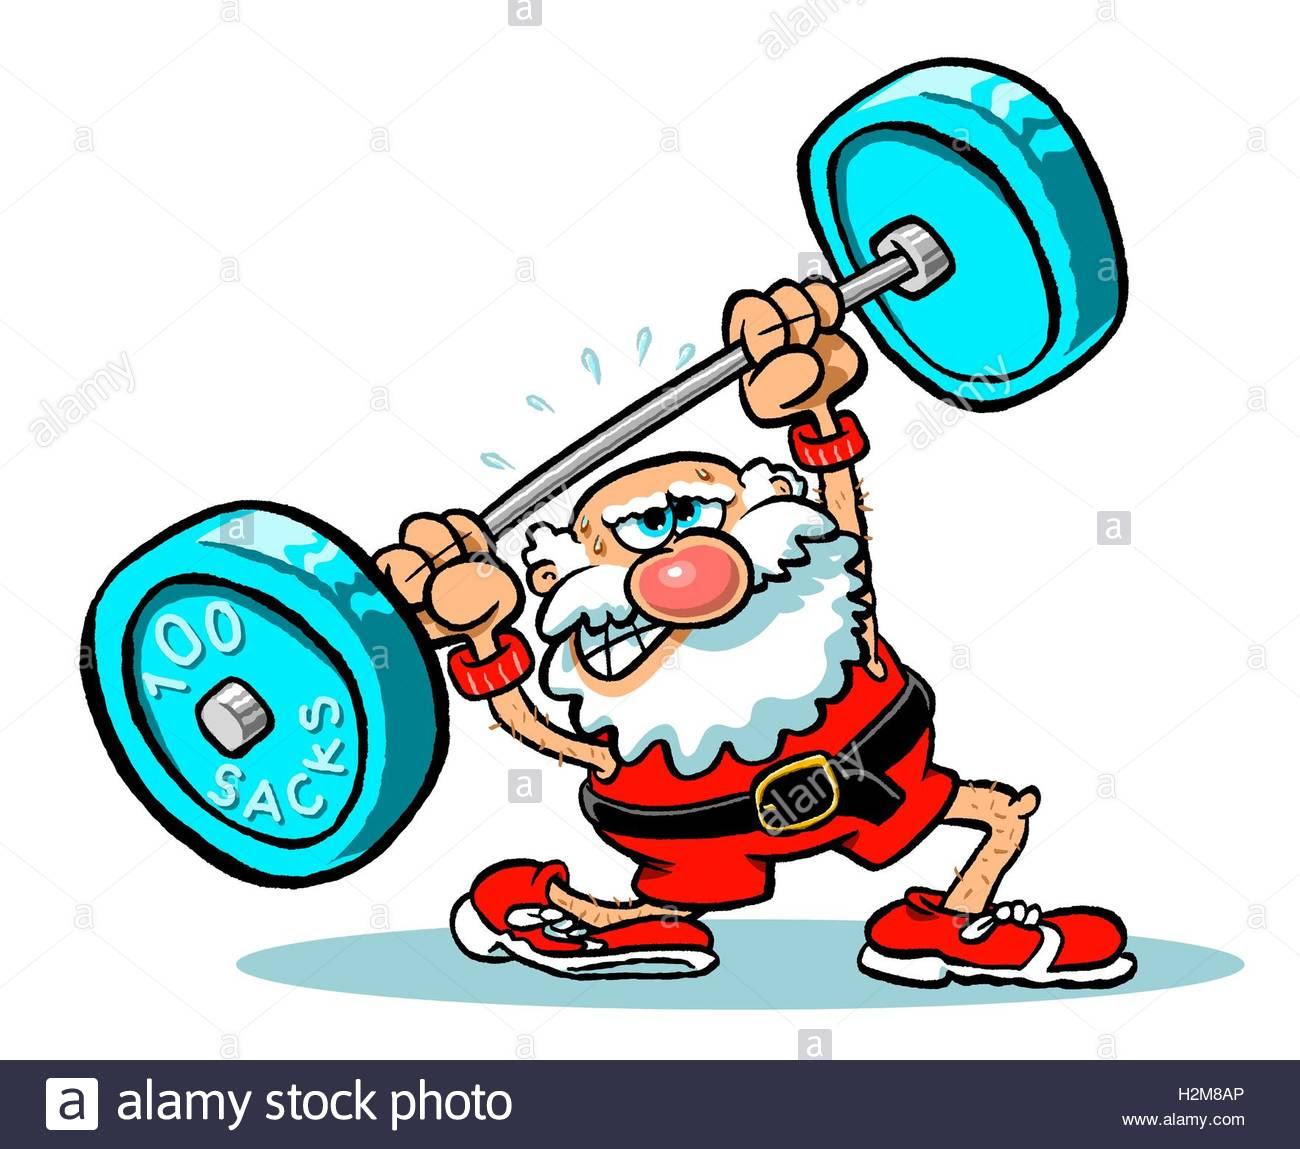 Image result for santa claus weights